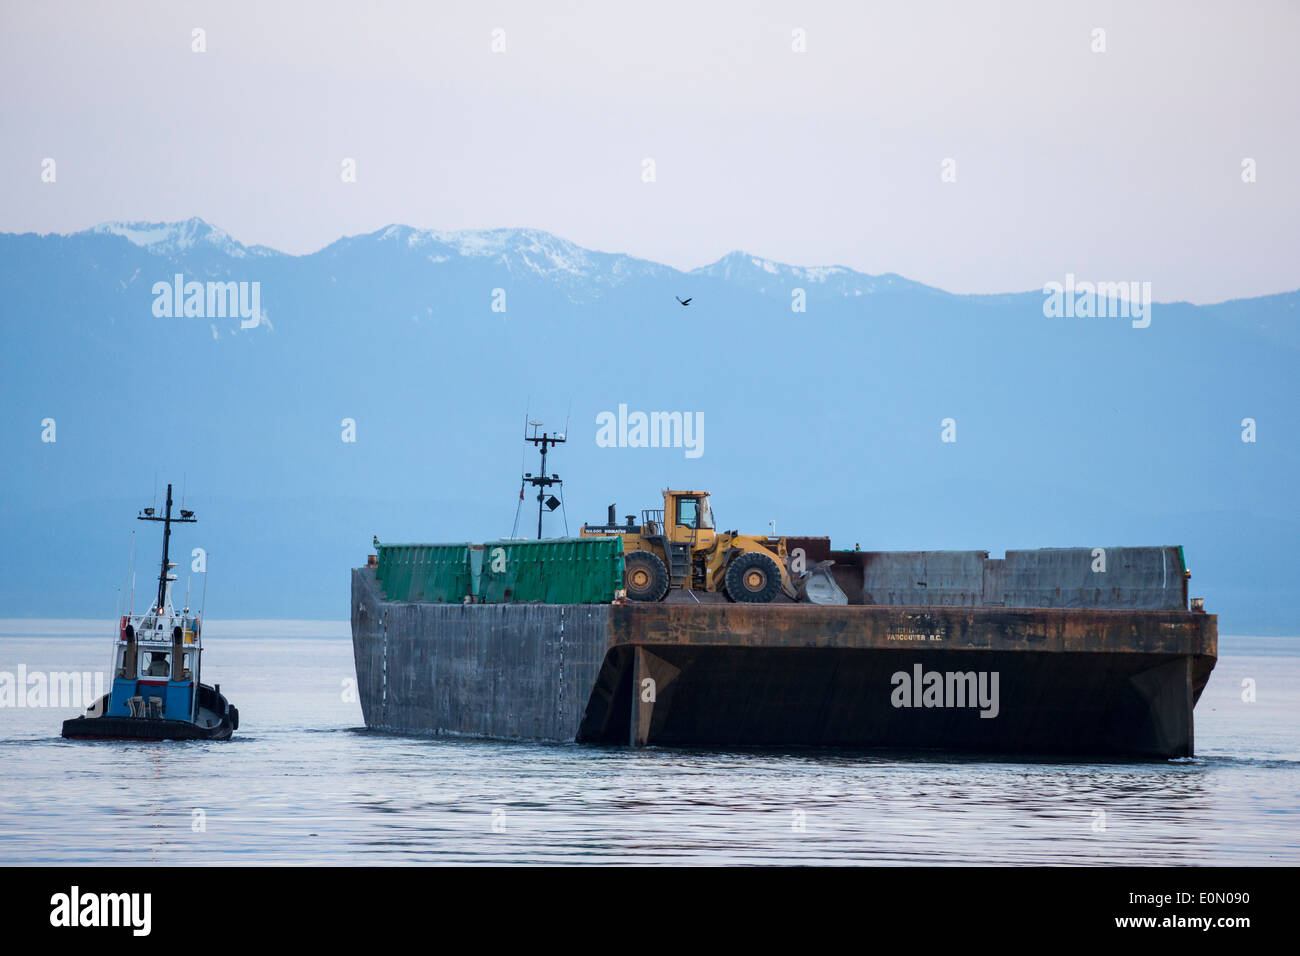 Tugboat and heavy duty equipment barge at dusk-Victoria, British Columbia,Canada. - Stock Image